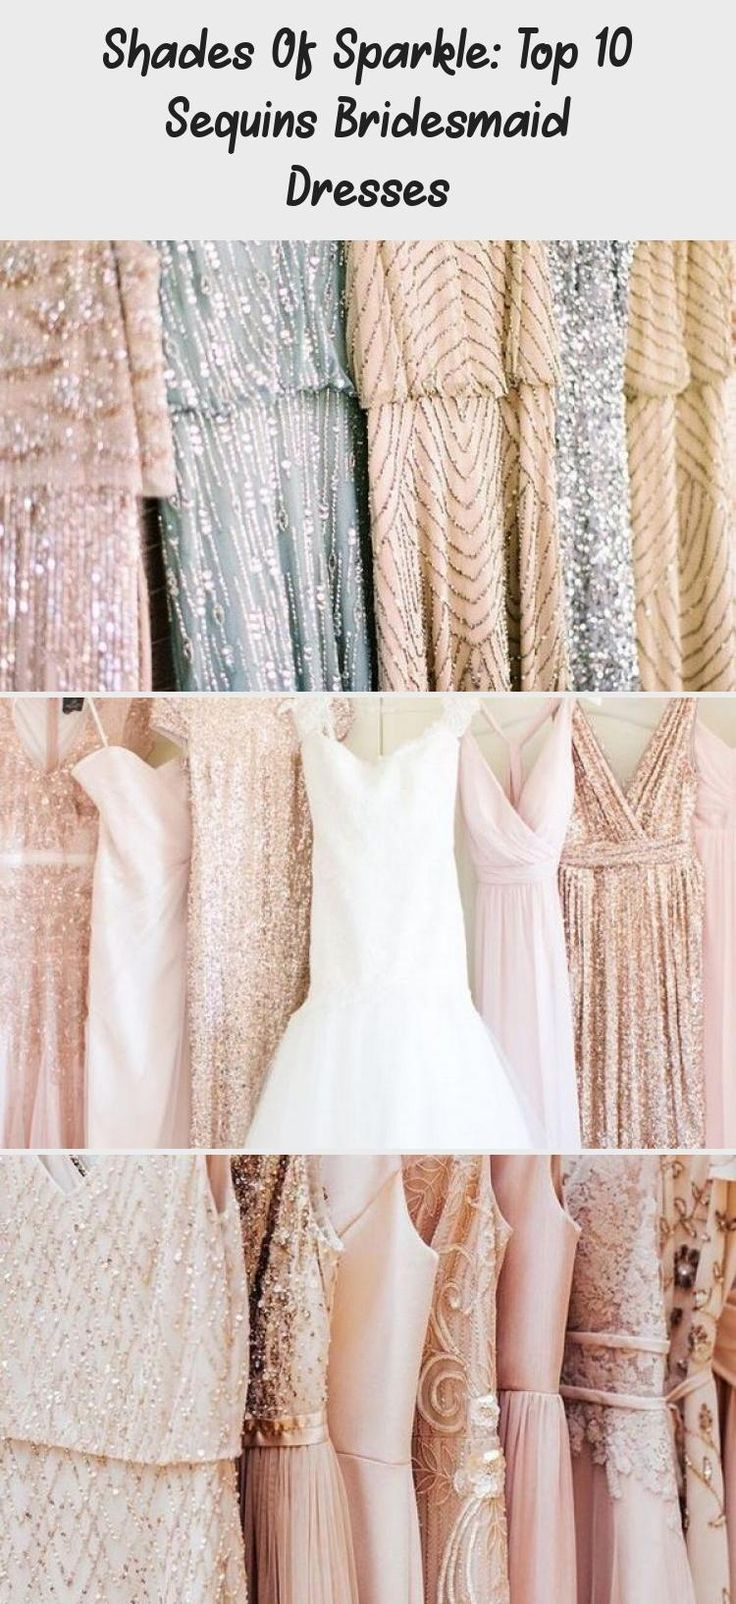 mix and match neutral glitter bridesmaid dresses #emmalovesweddings #weddingideas2019 #WhiteBridesmaidDresses #BridesmaidDressesStyles #BridesmaidDressesBlue #BridesmaidDressesPlusSize #OffTheShoulderBridesmaidDresses